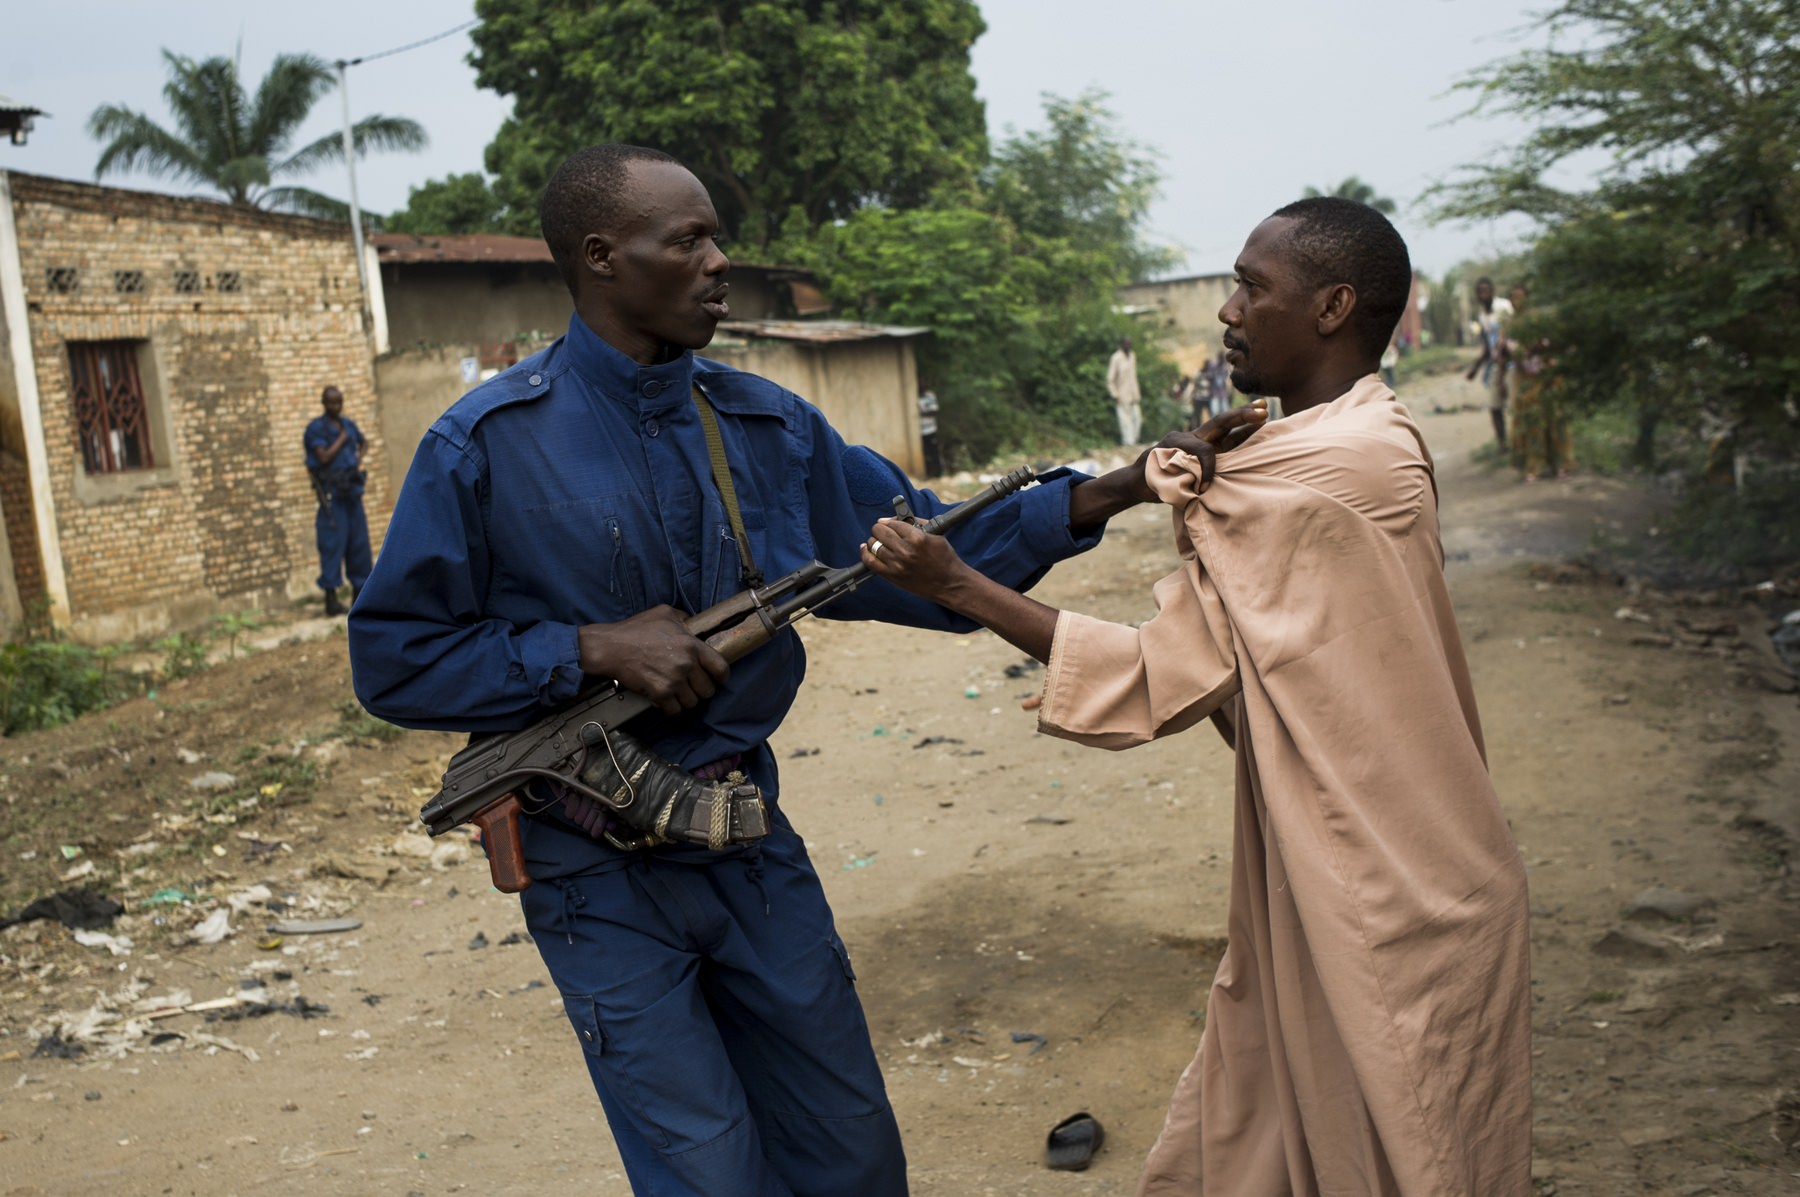 A policeman jostles with a resident of the largely opposition neighbourhood of Cibitoke in Bujumbura, Burundi, on June 27, 2015. Police conducted a raid on the neighbourhood this morning, searching for weapons and arresting a man they accused of being a leader of an opposition party, who they claim was hiding weapons.